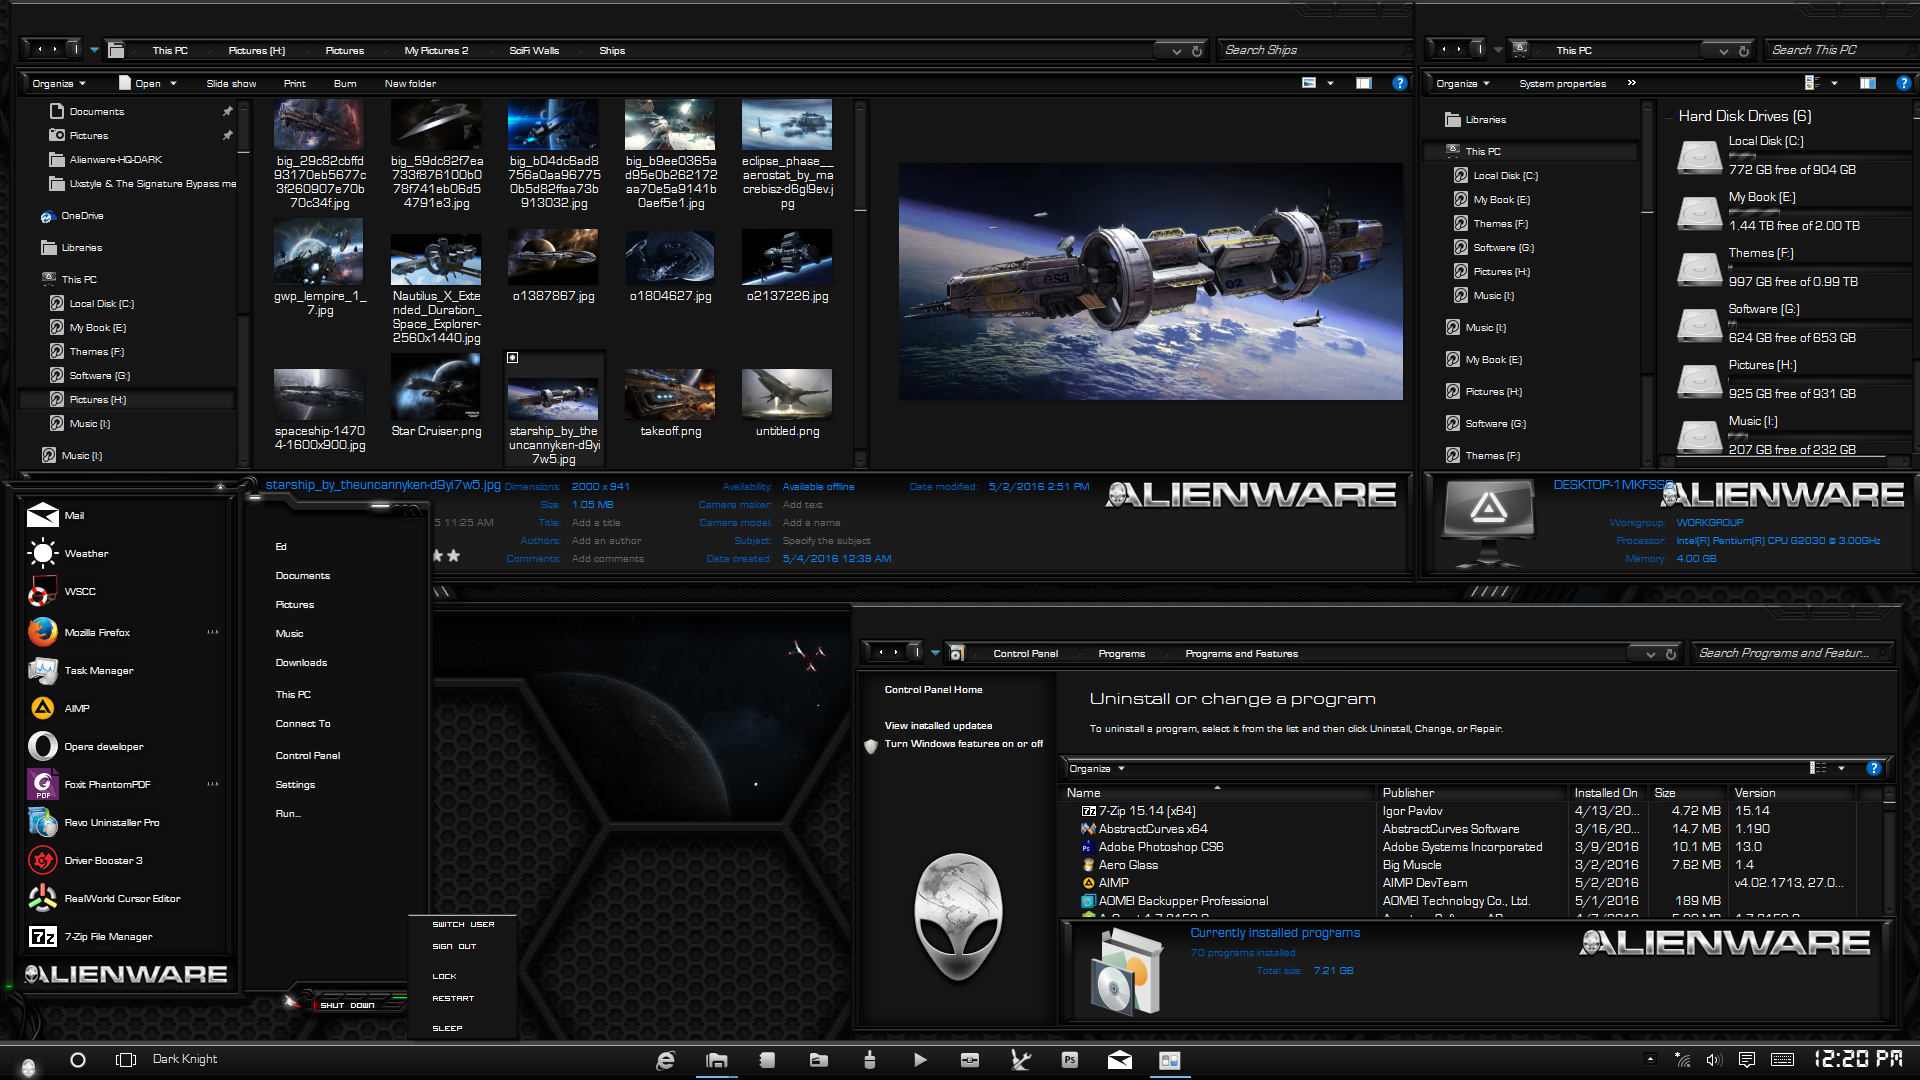 alienware software for windows 10